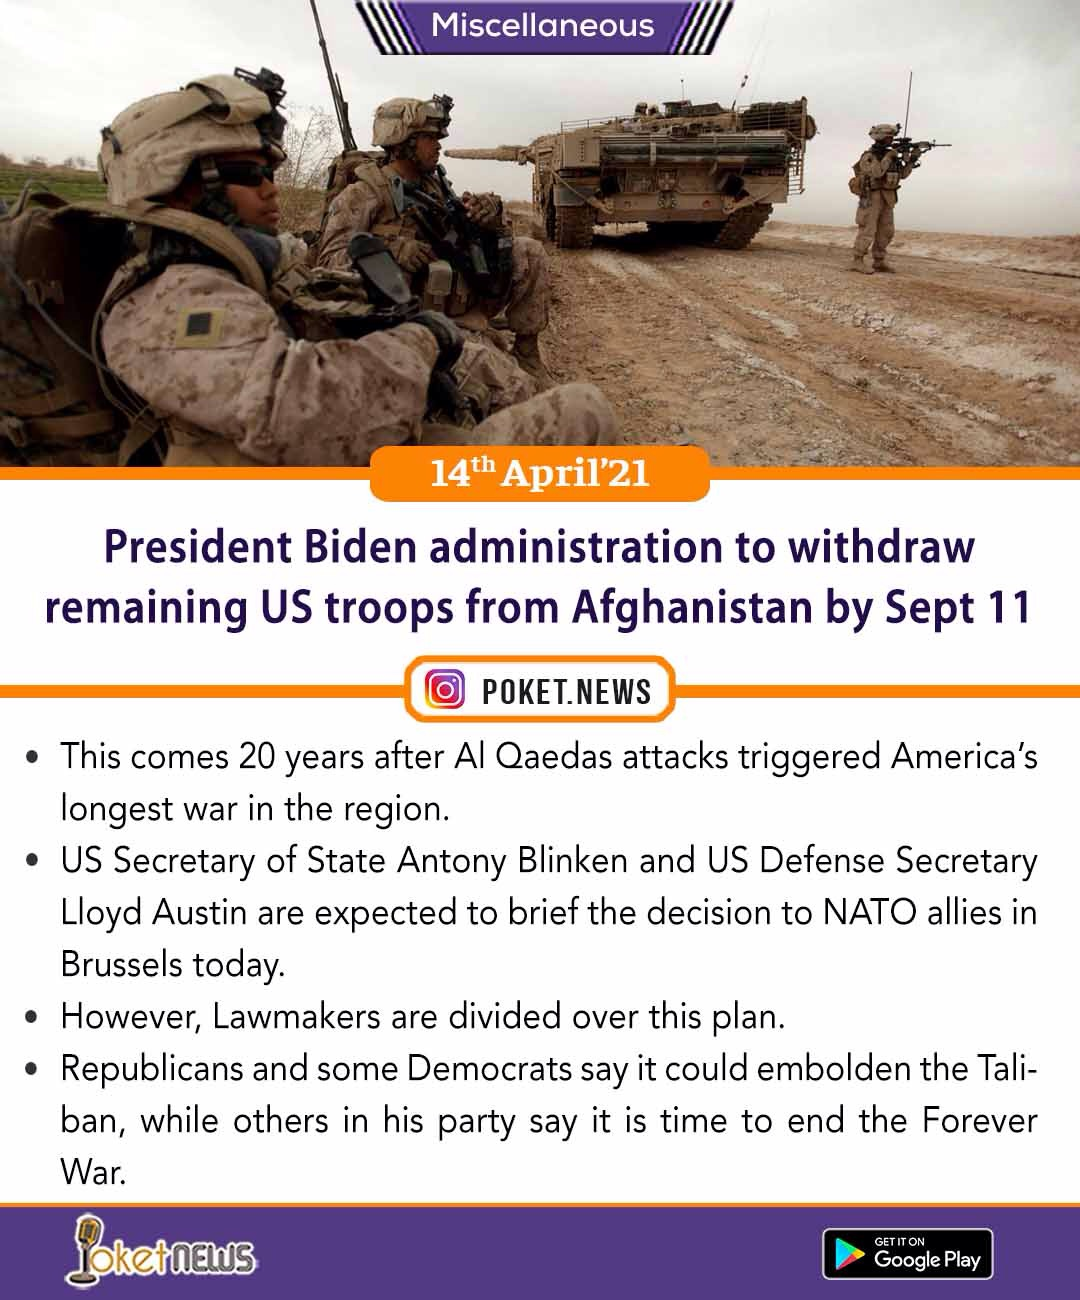 President Joseph Biden administration to withdraw remaining US troops from Afghanistan by Sept 11